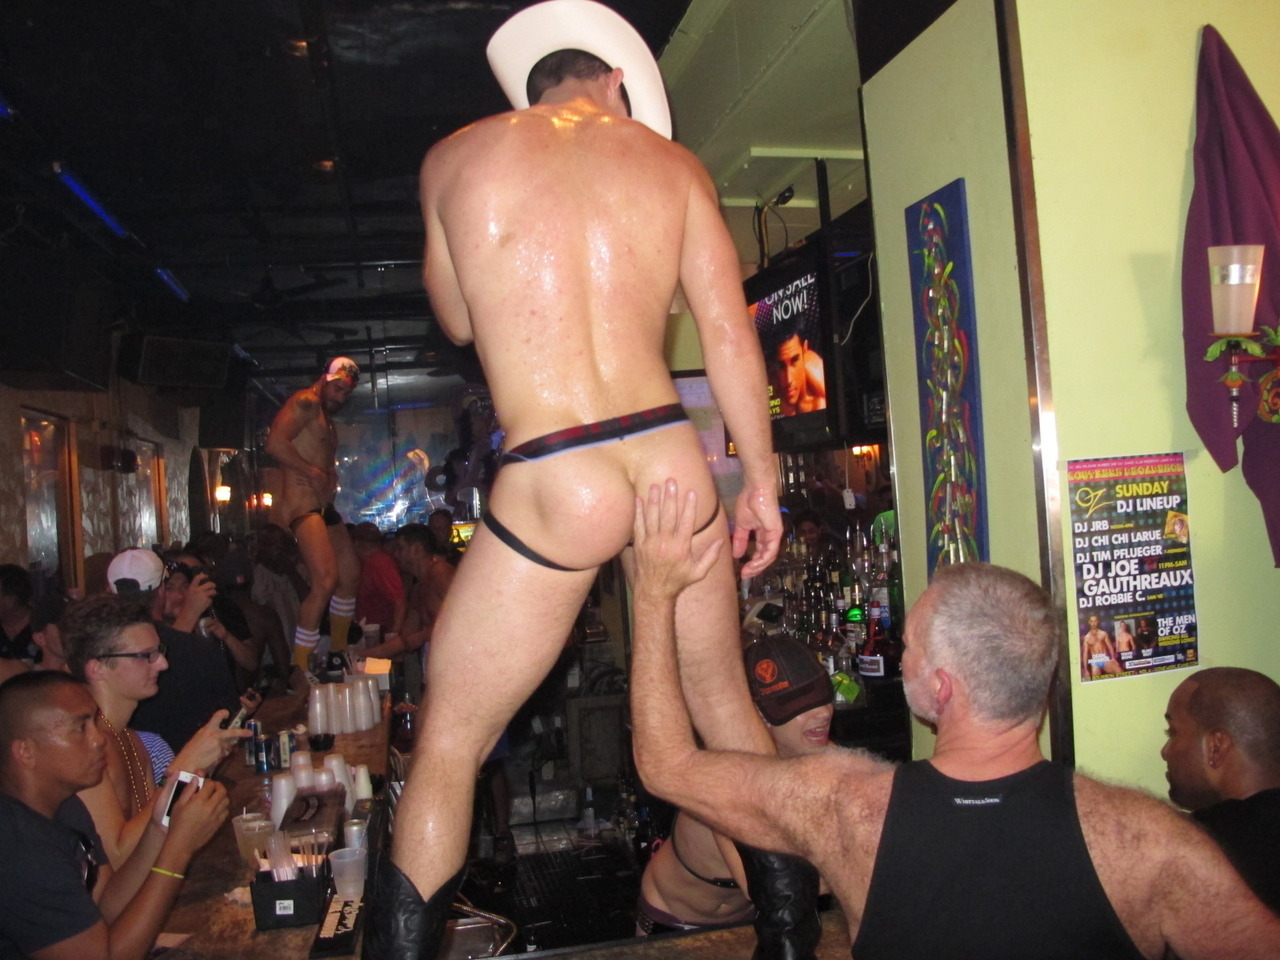 The Best Gay Bars New Orleans Guide Ever